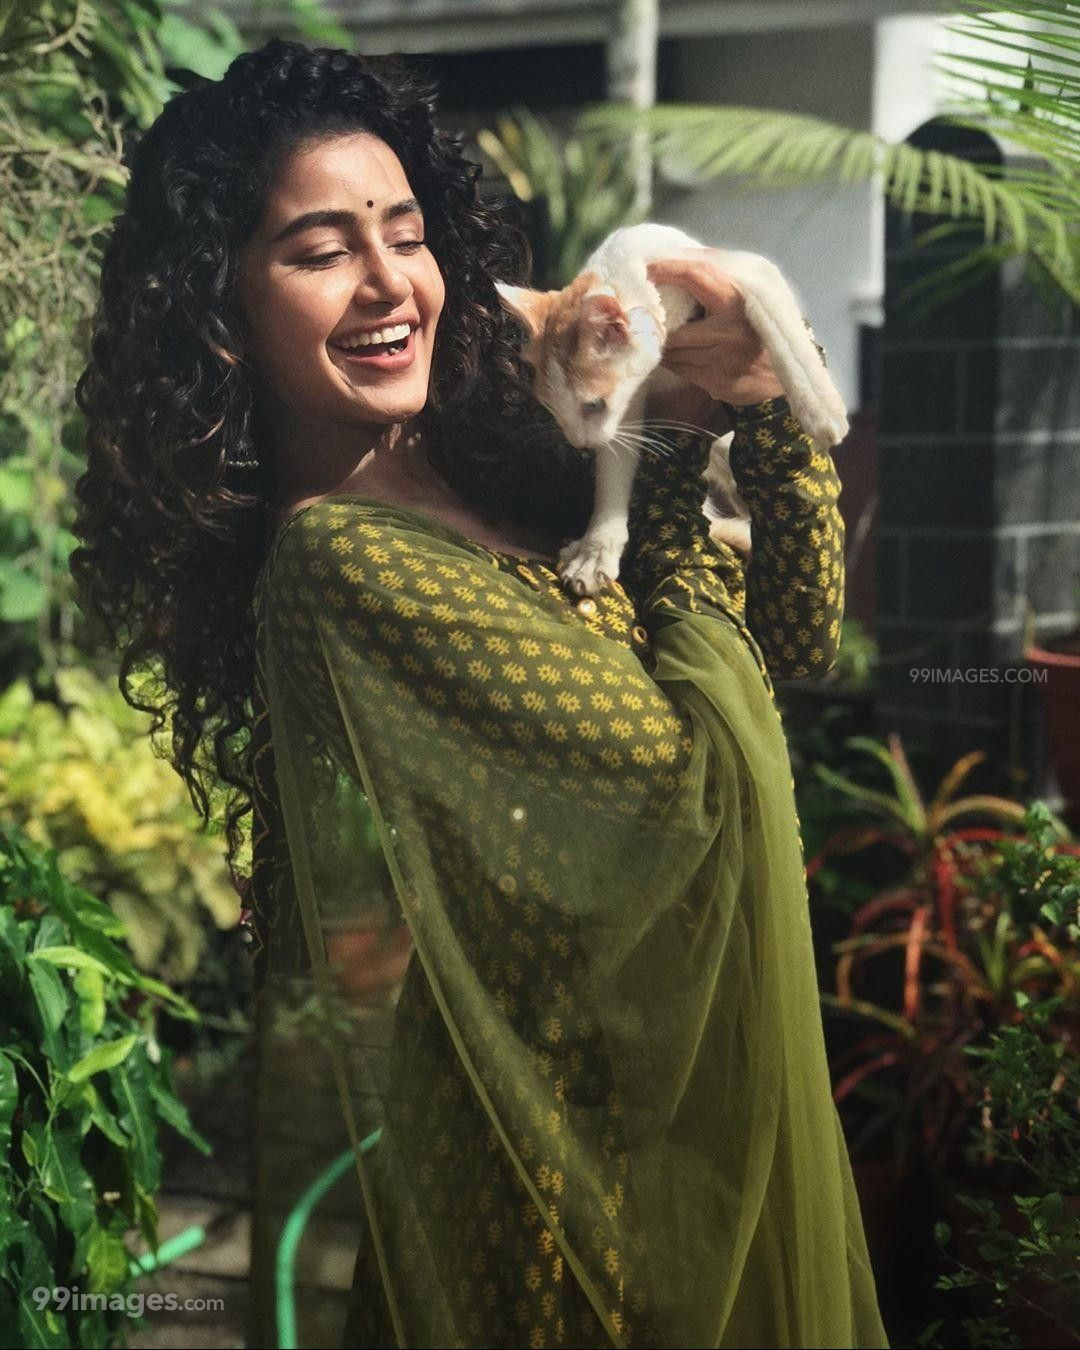 Anupama Parameswaran HD Wallpapers (Desktop Background / Android / iPhone) (1080p, 4k) (197360) - Anupama Parameswaran